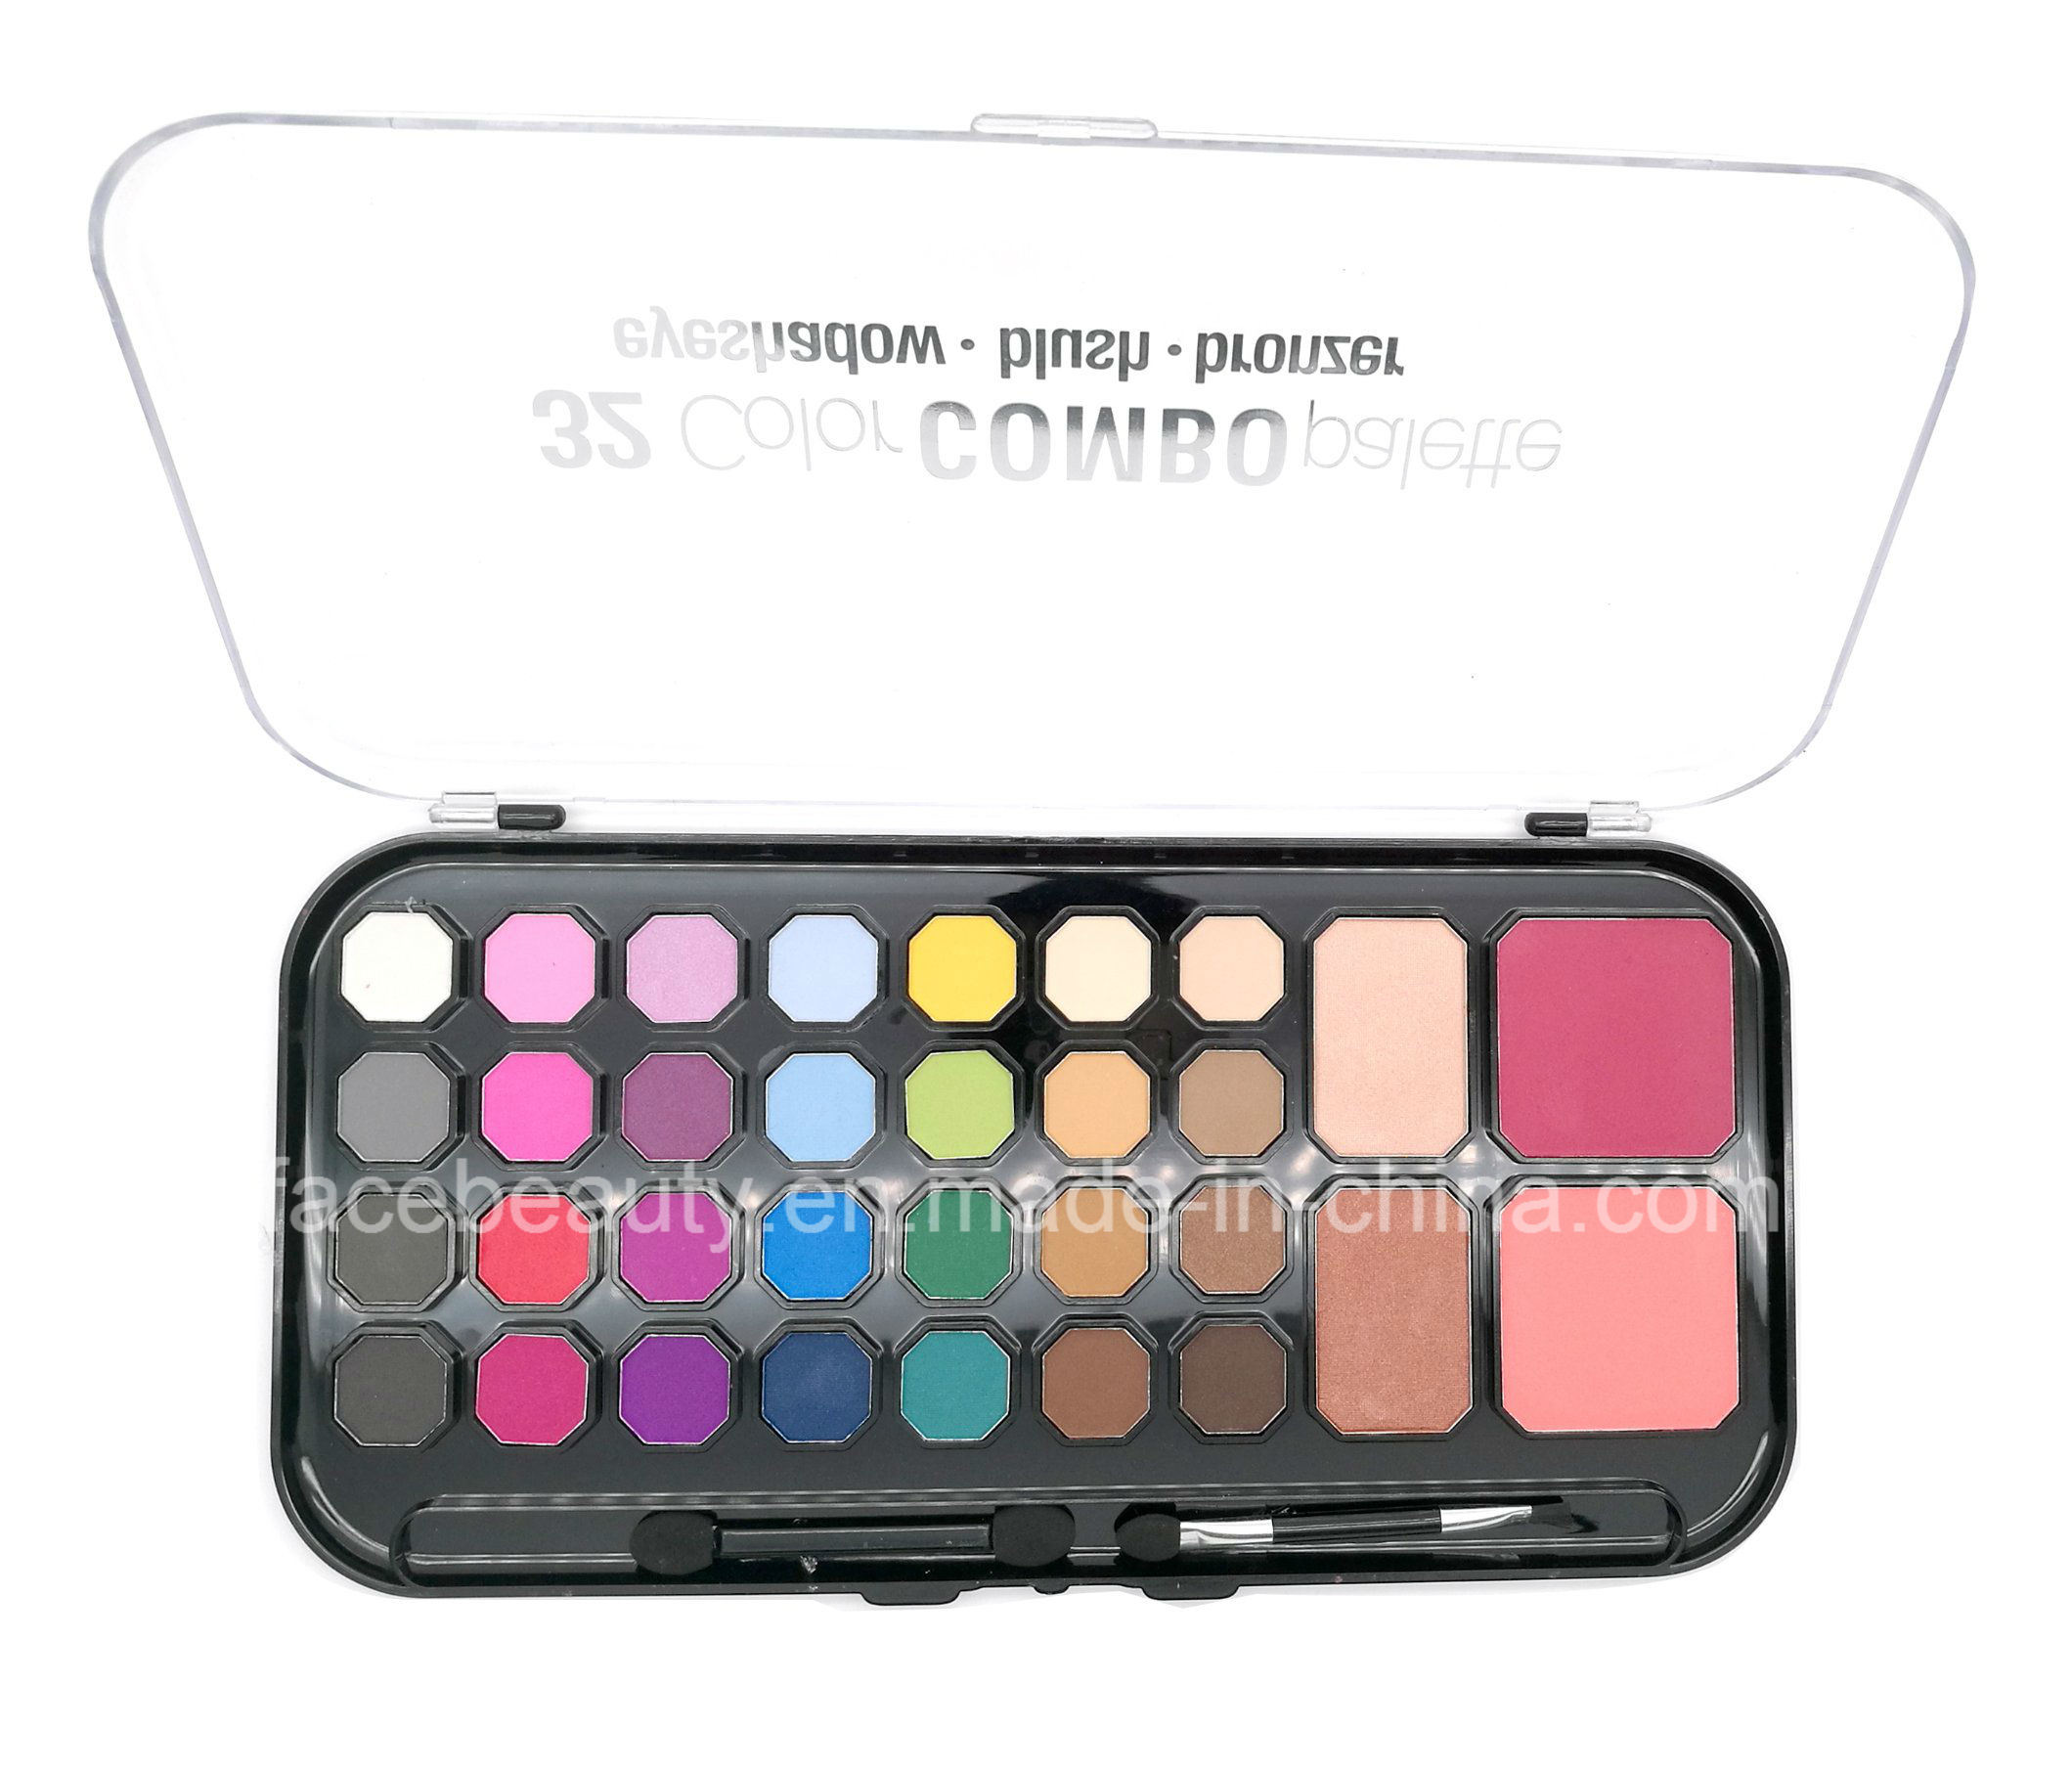 OEM/ODM Professional High Quality Multi-Color 32 Color Combo Palette with Eyeshadow, Blush, Bronzer